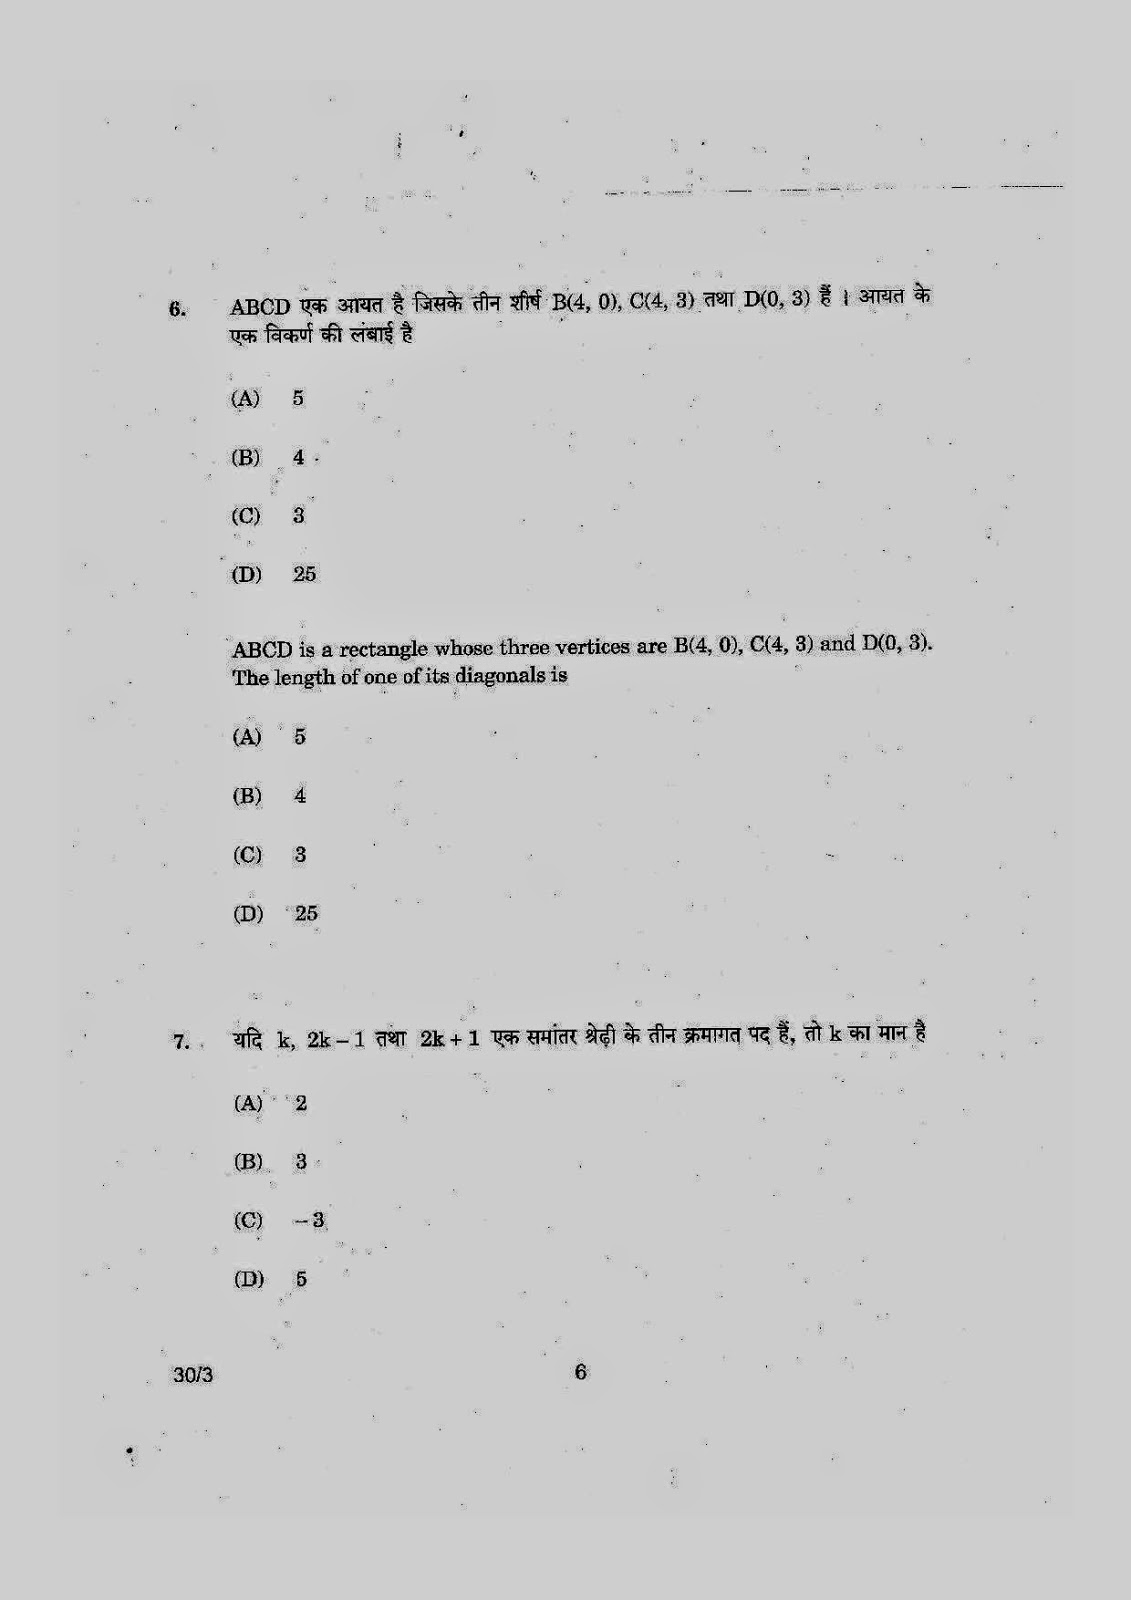 cbse class 10th mathematics question paper 2014